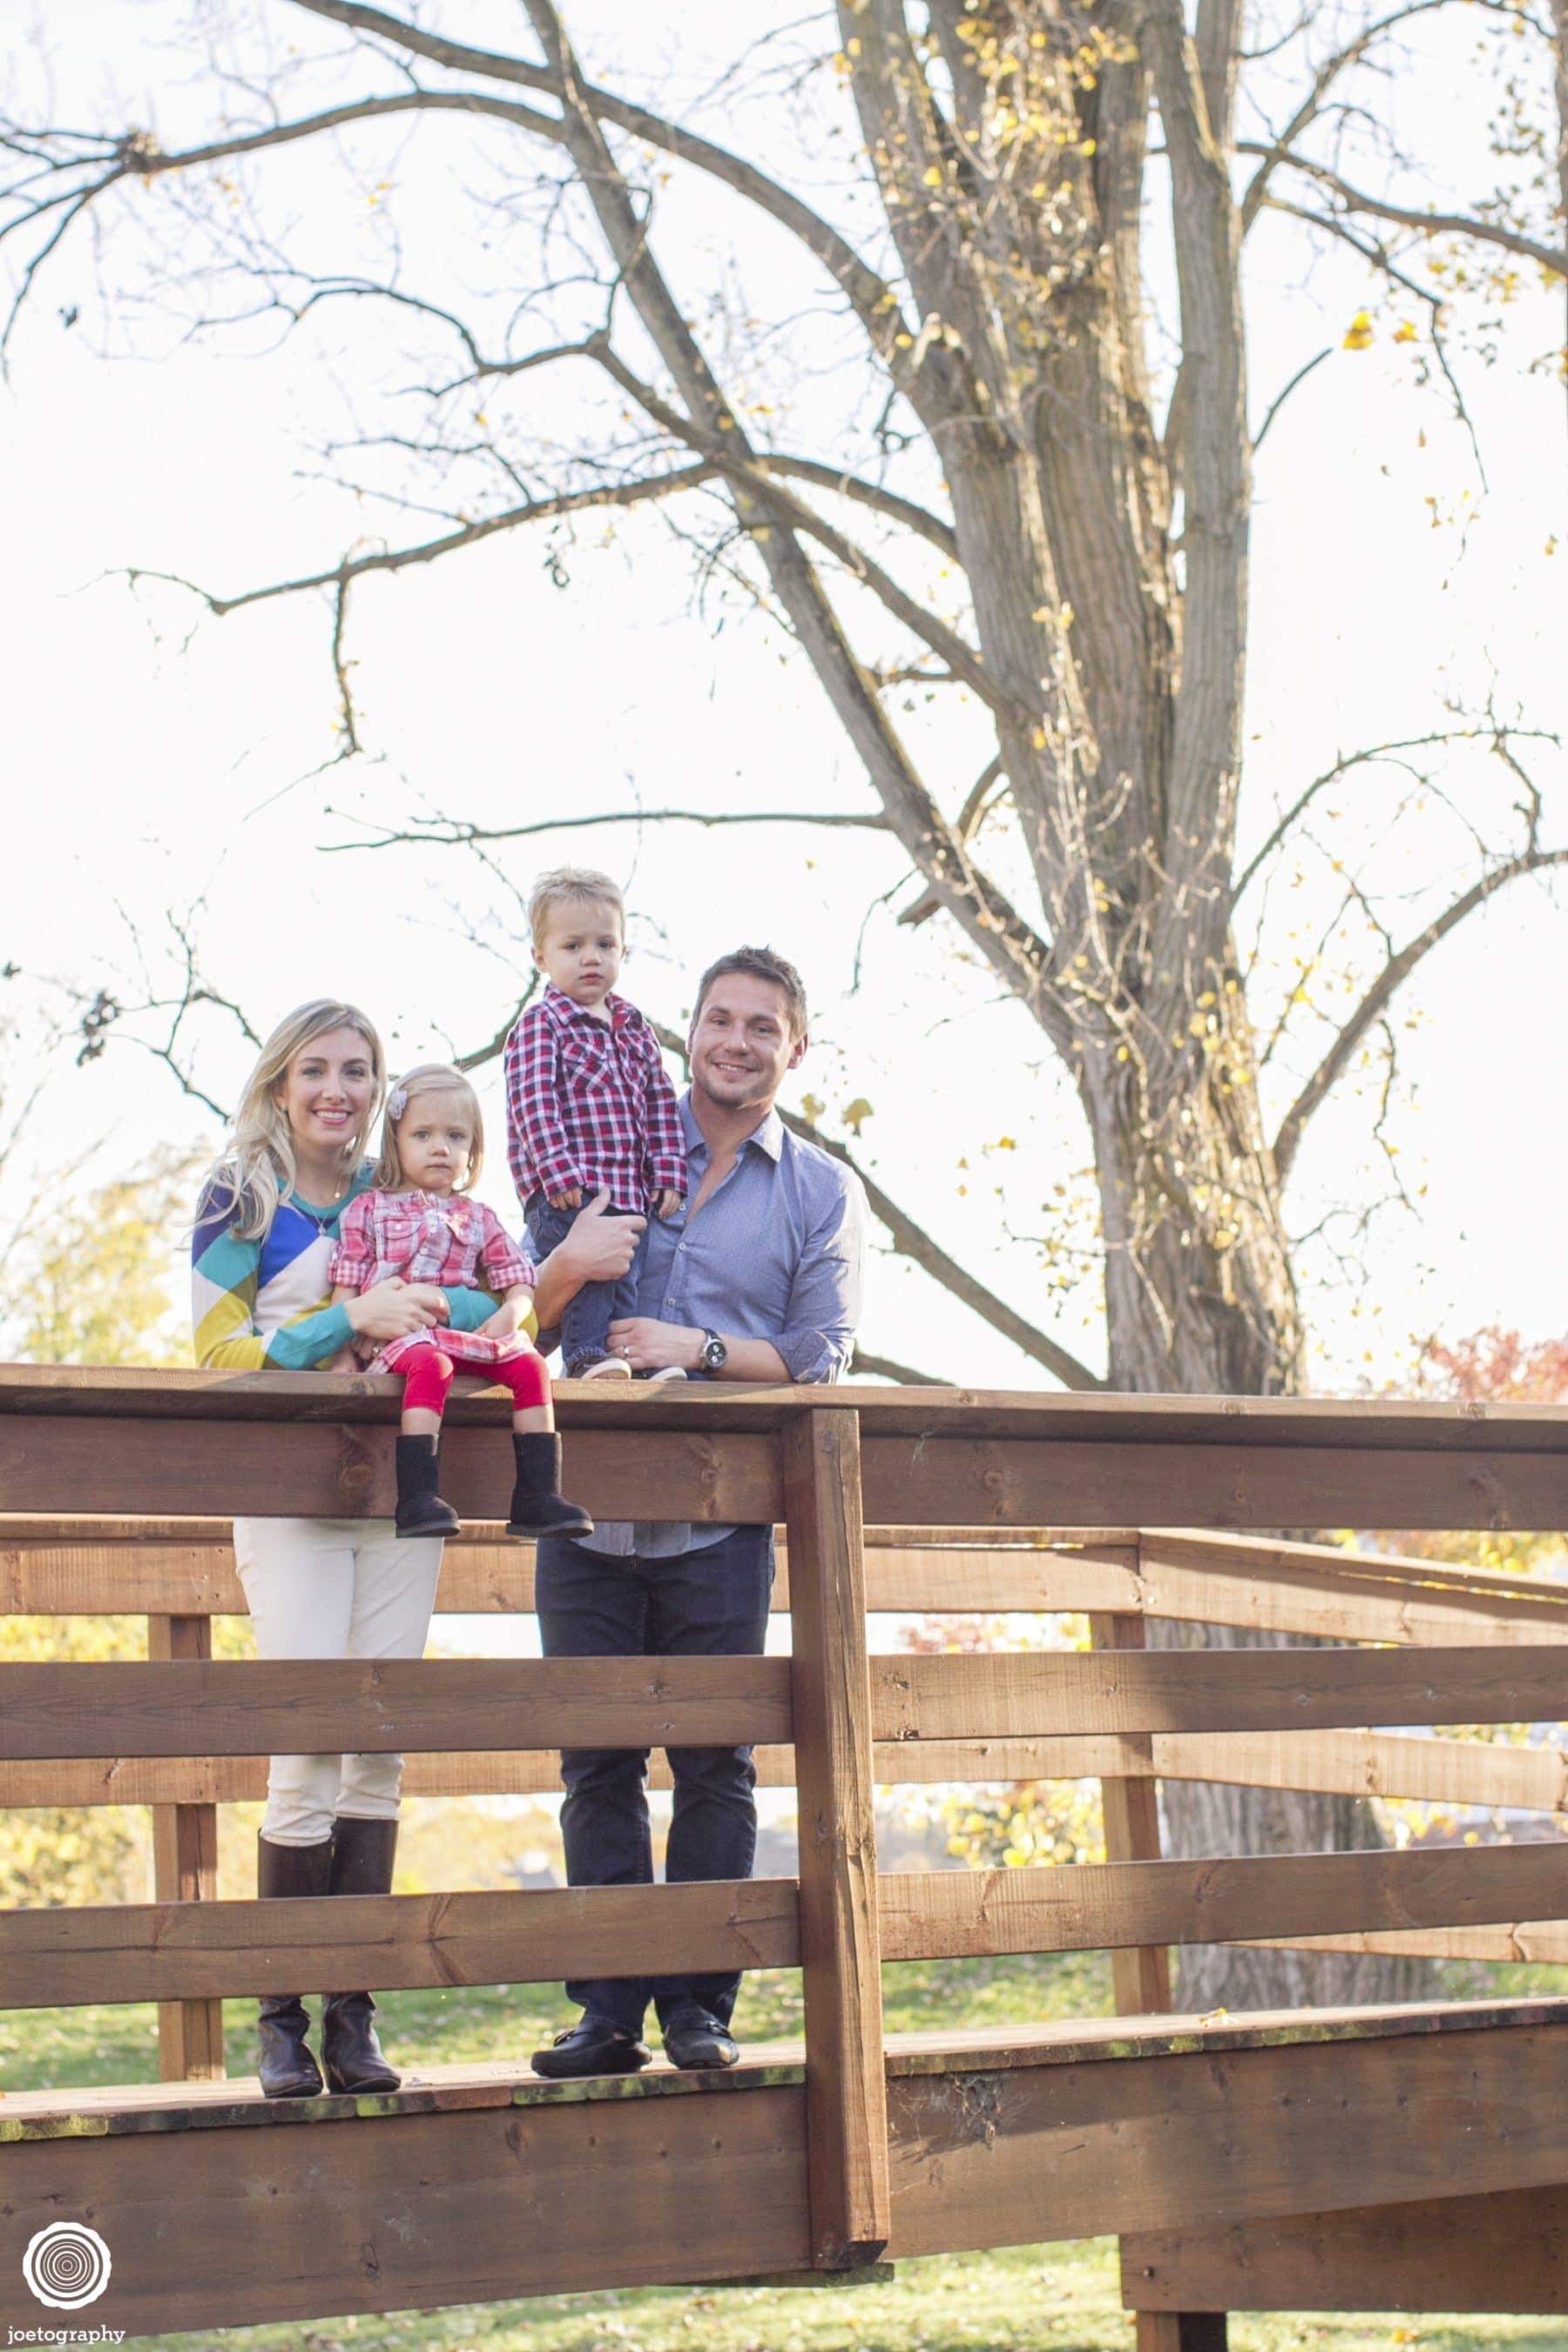 kriner-family-photographs-carmel-indiana-13